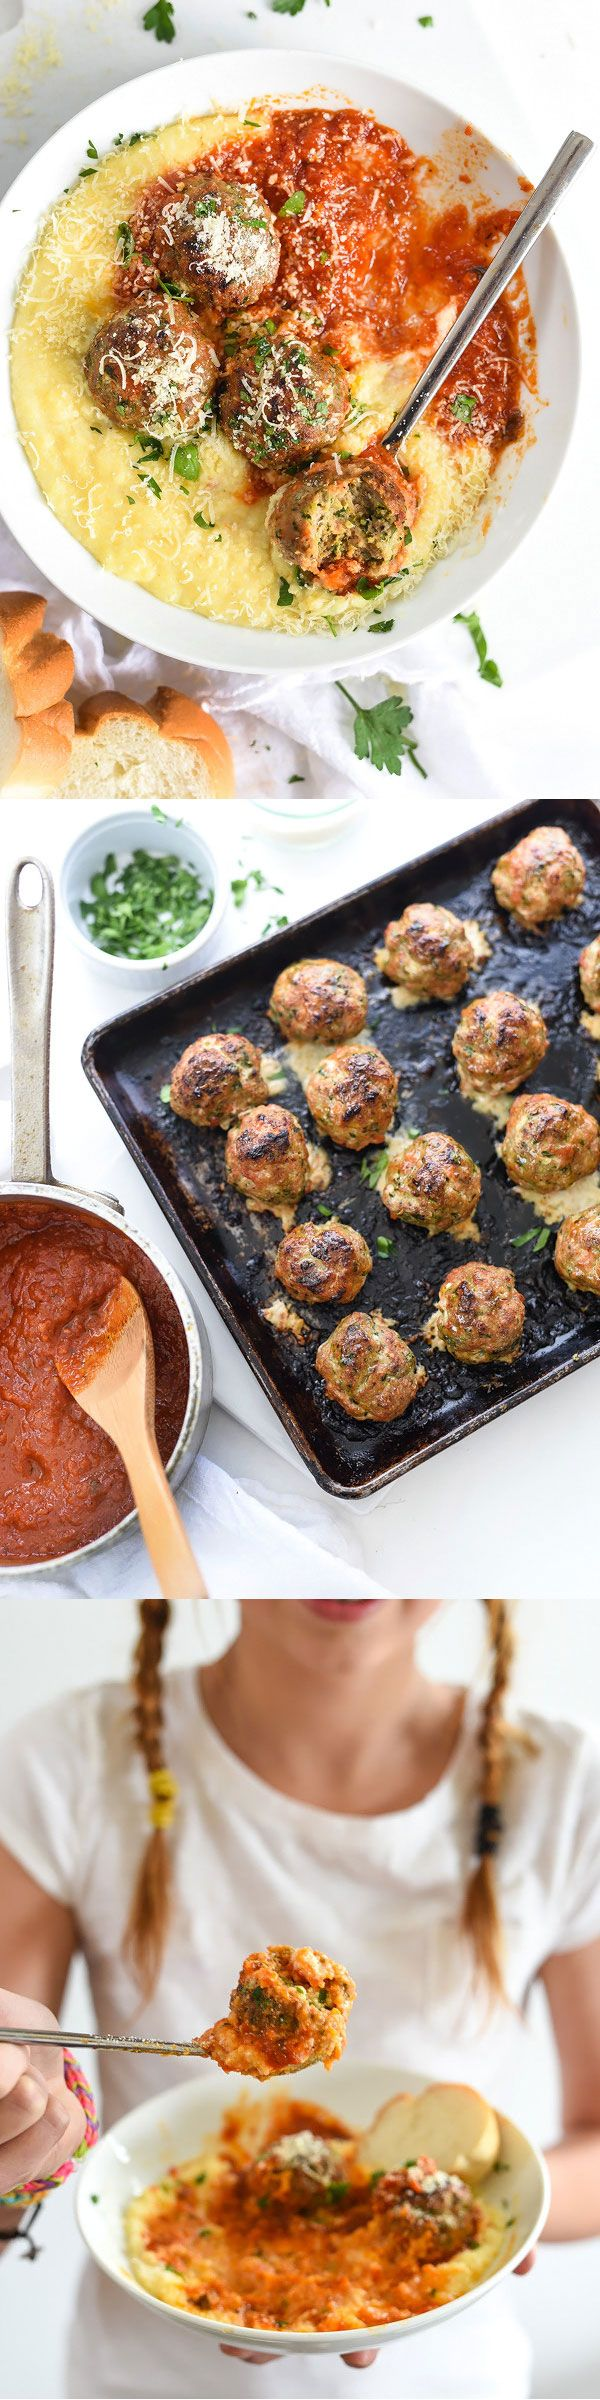 Baked instead of fried, my Turkey Meatballs with Creamy Polenta and DeLallo Marinara is half homemade, half pre-made and just what healthier—and easier—weeknight eats are made of   foodiecrush.com